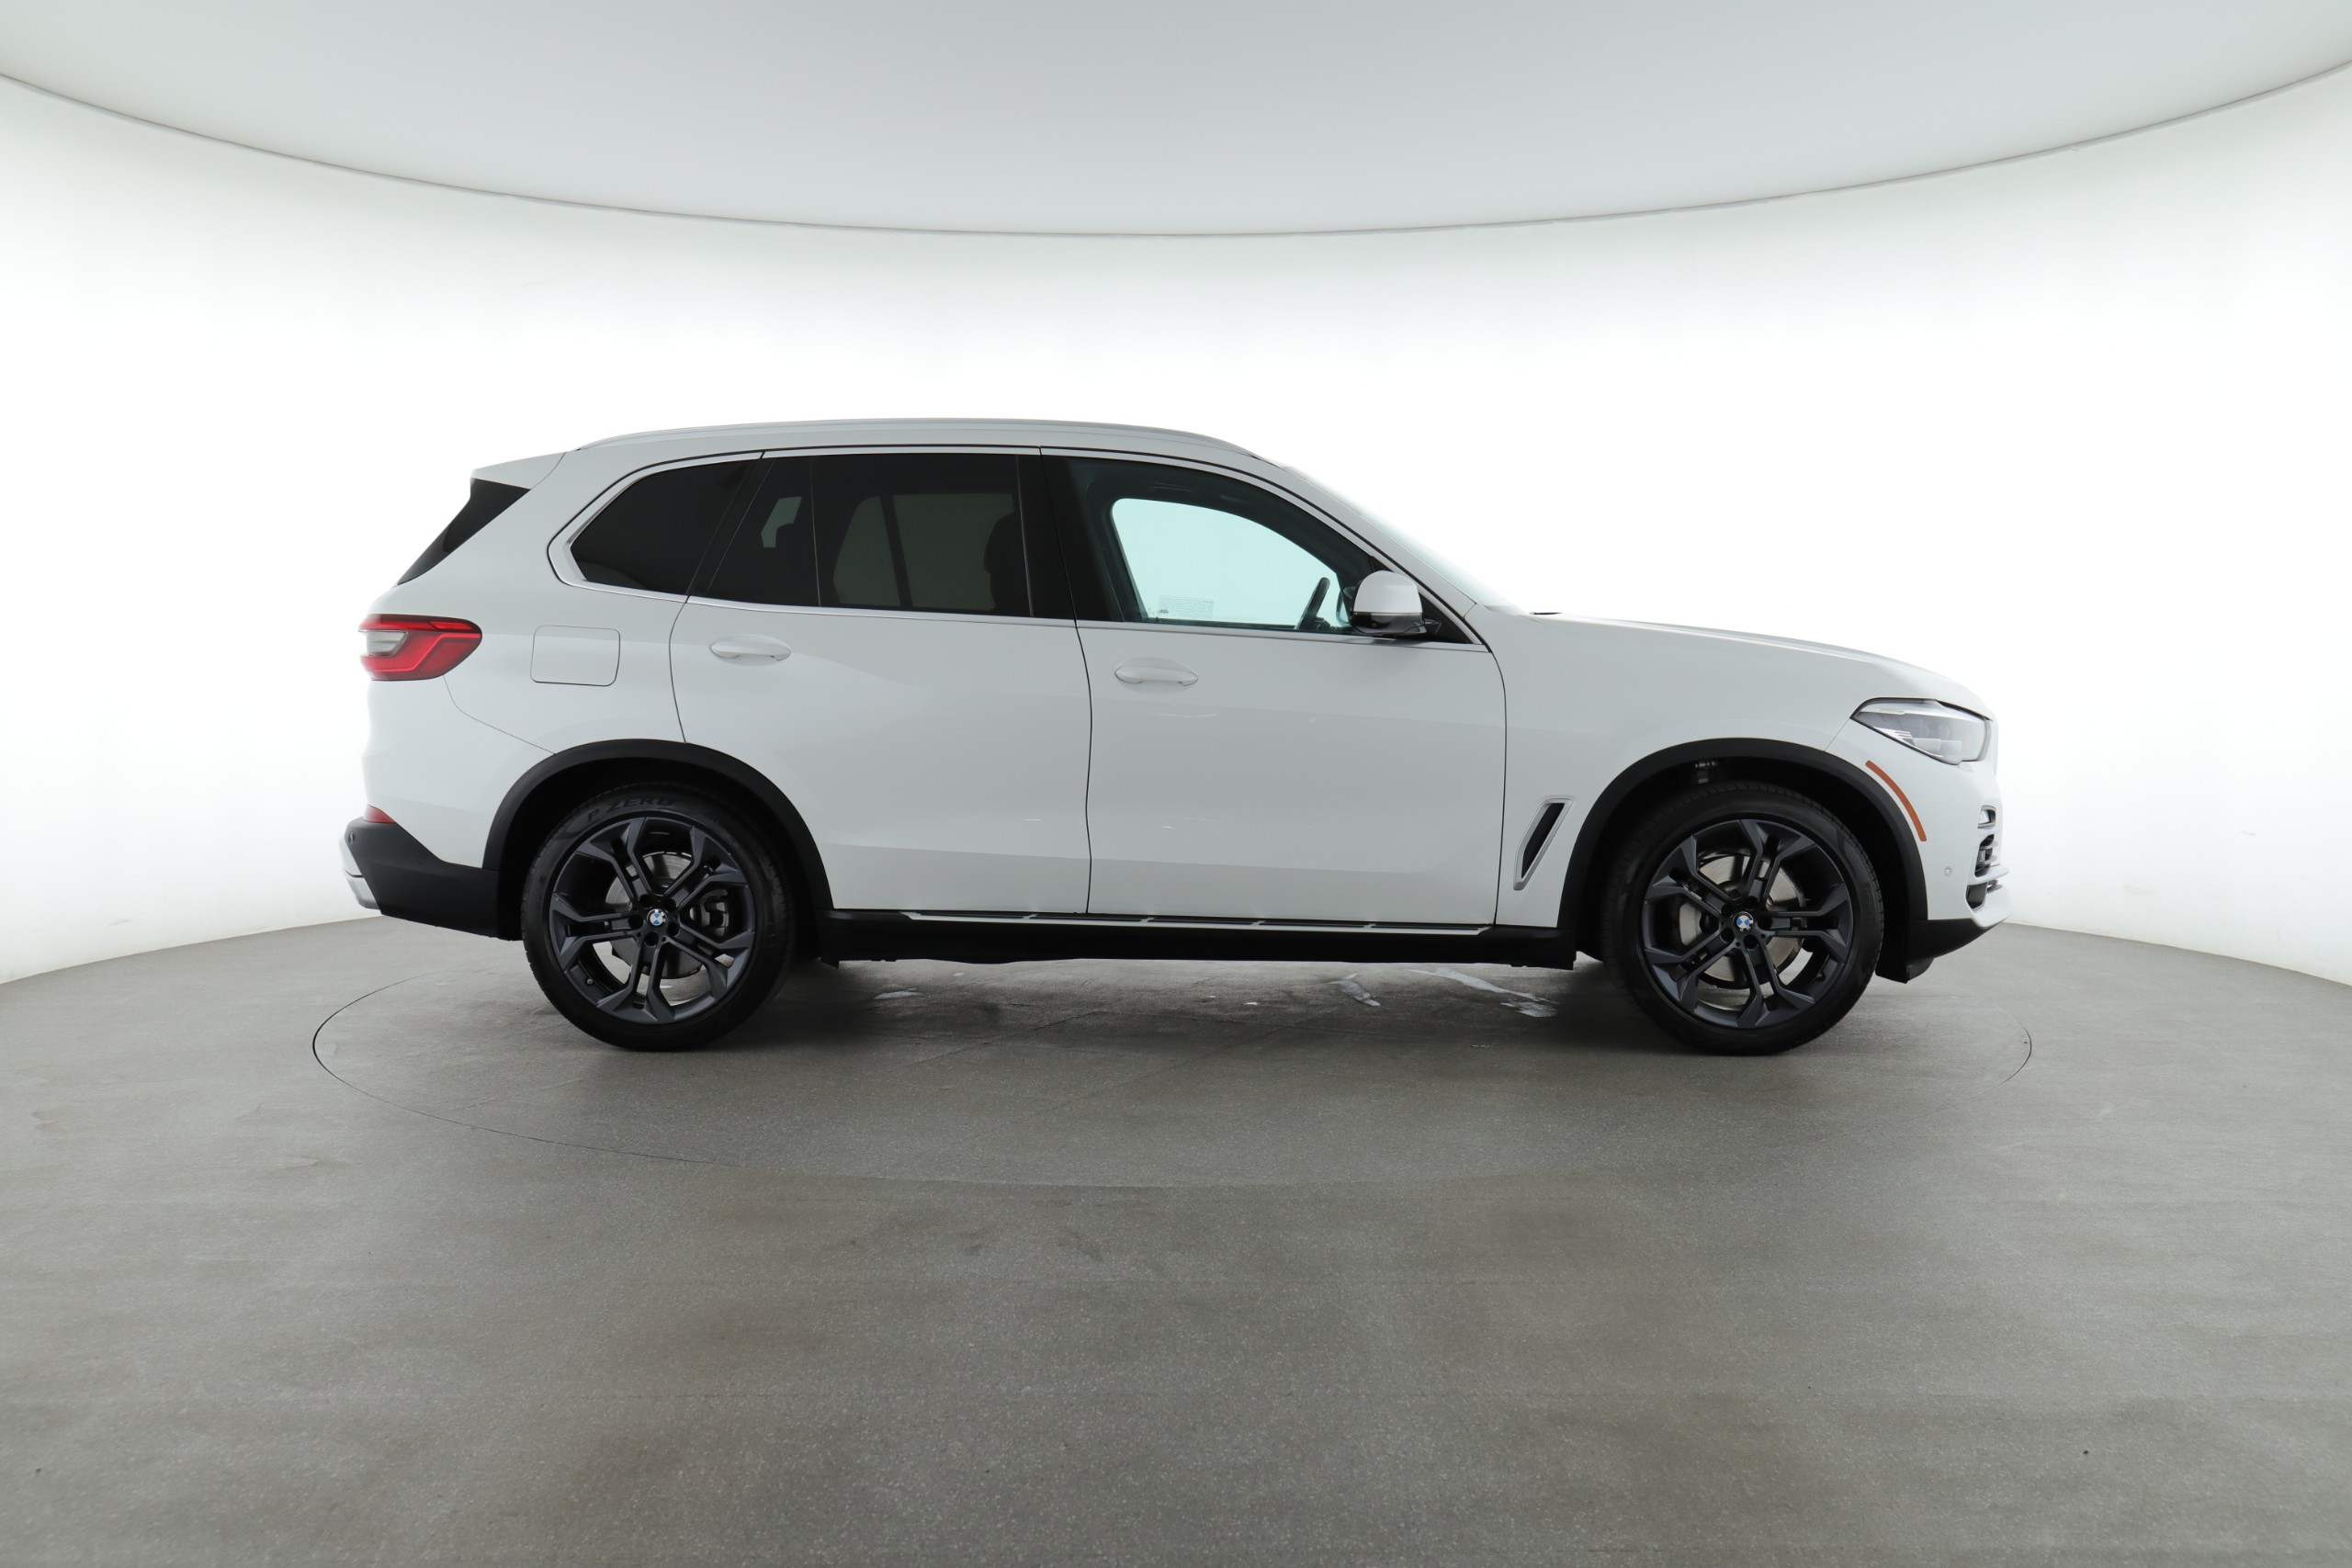 2019 BMW X5 xDrive40i (from $52,500)